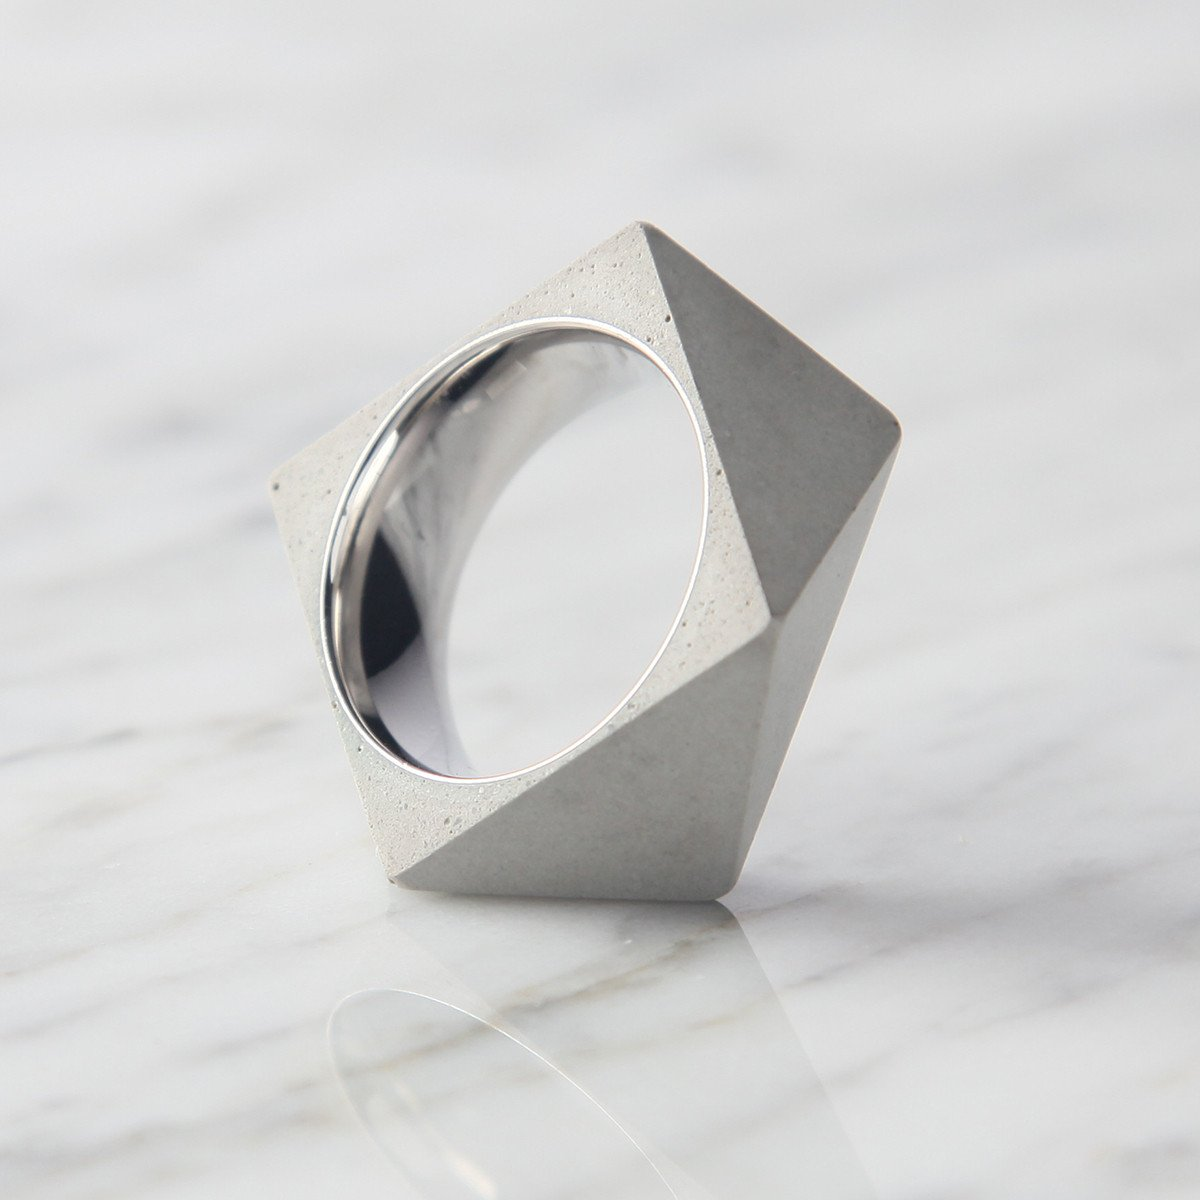 Polygon Concrete Ring -33569